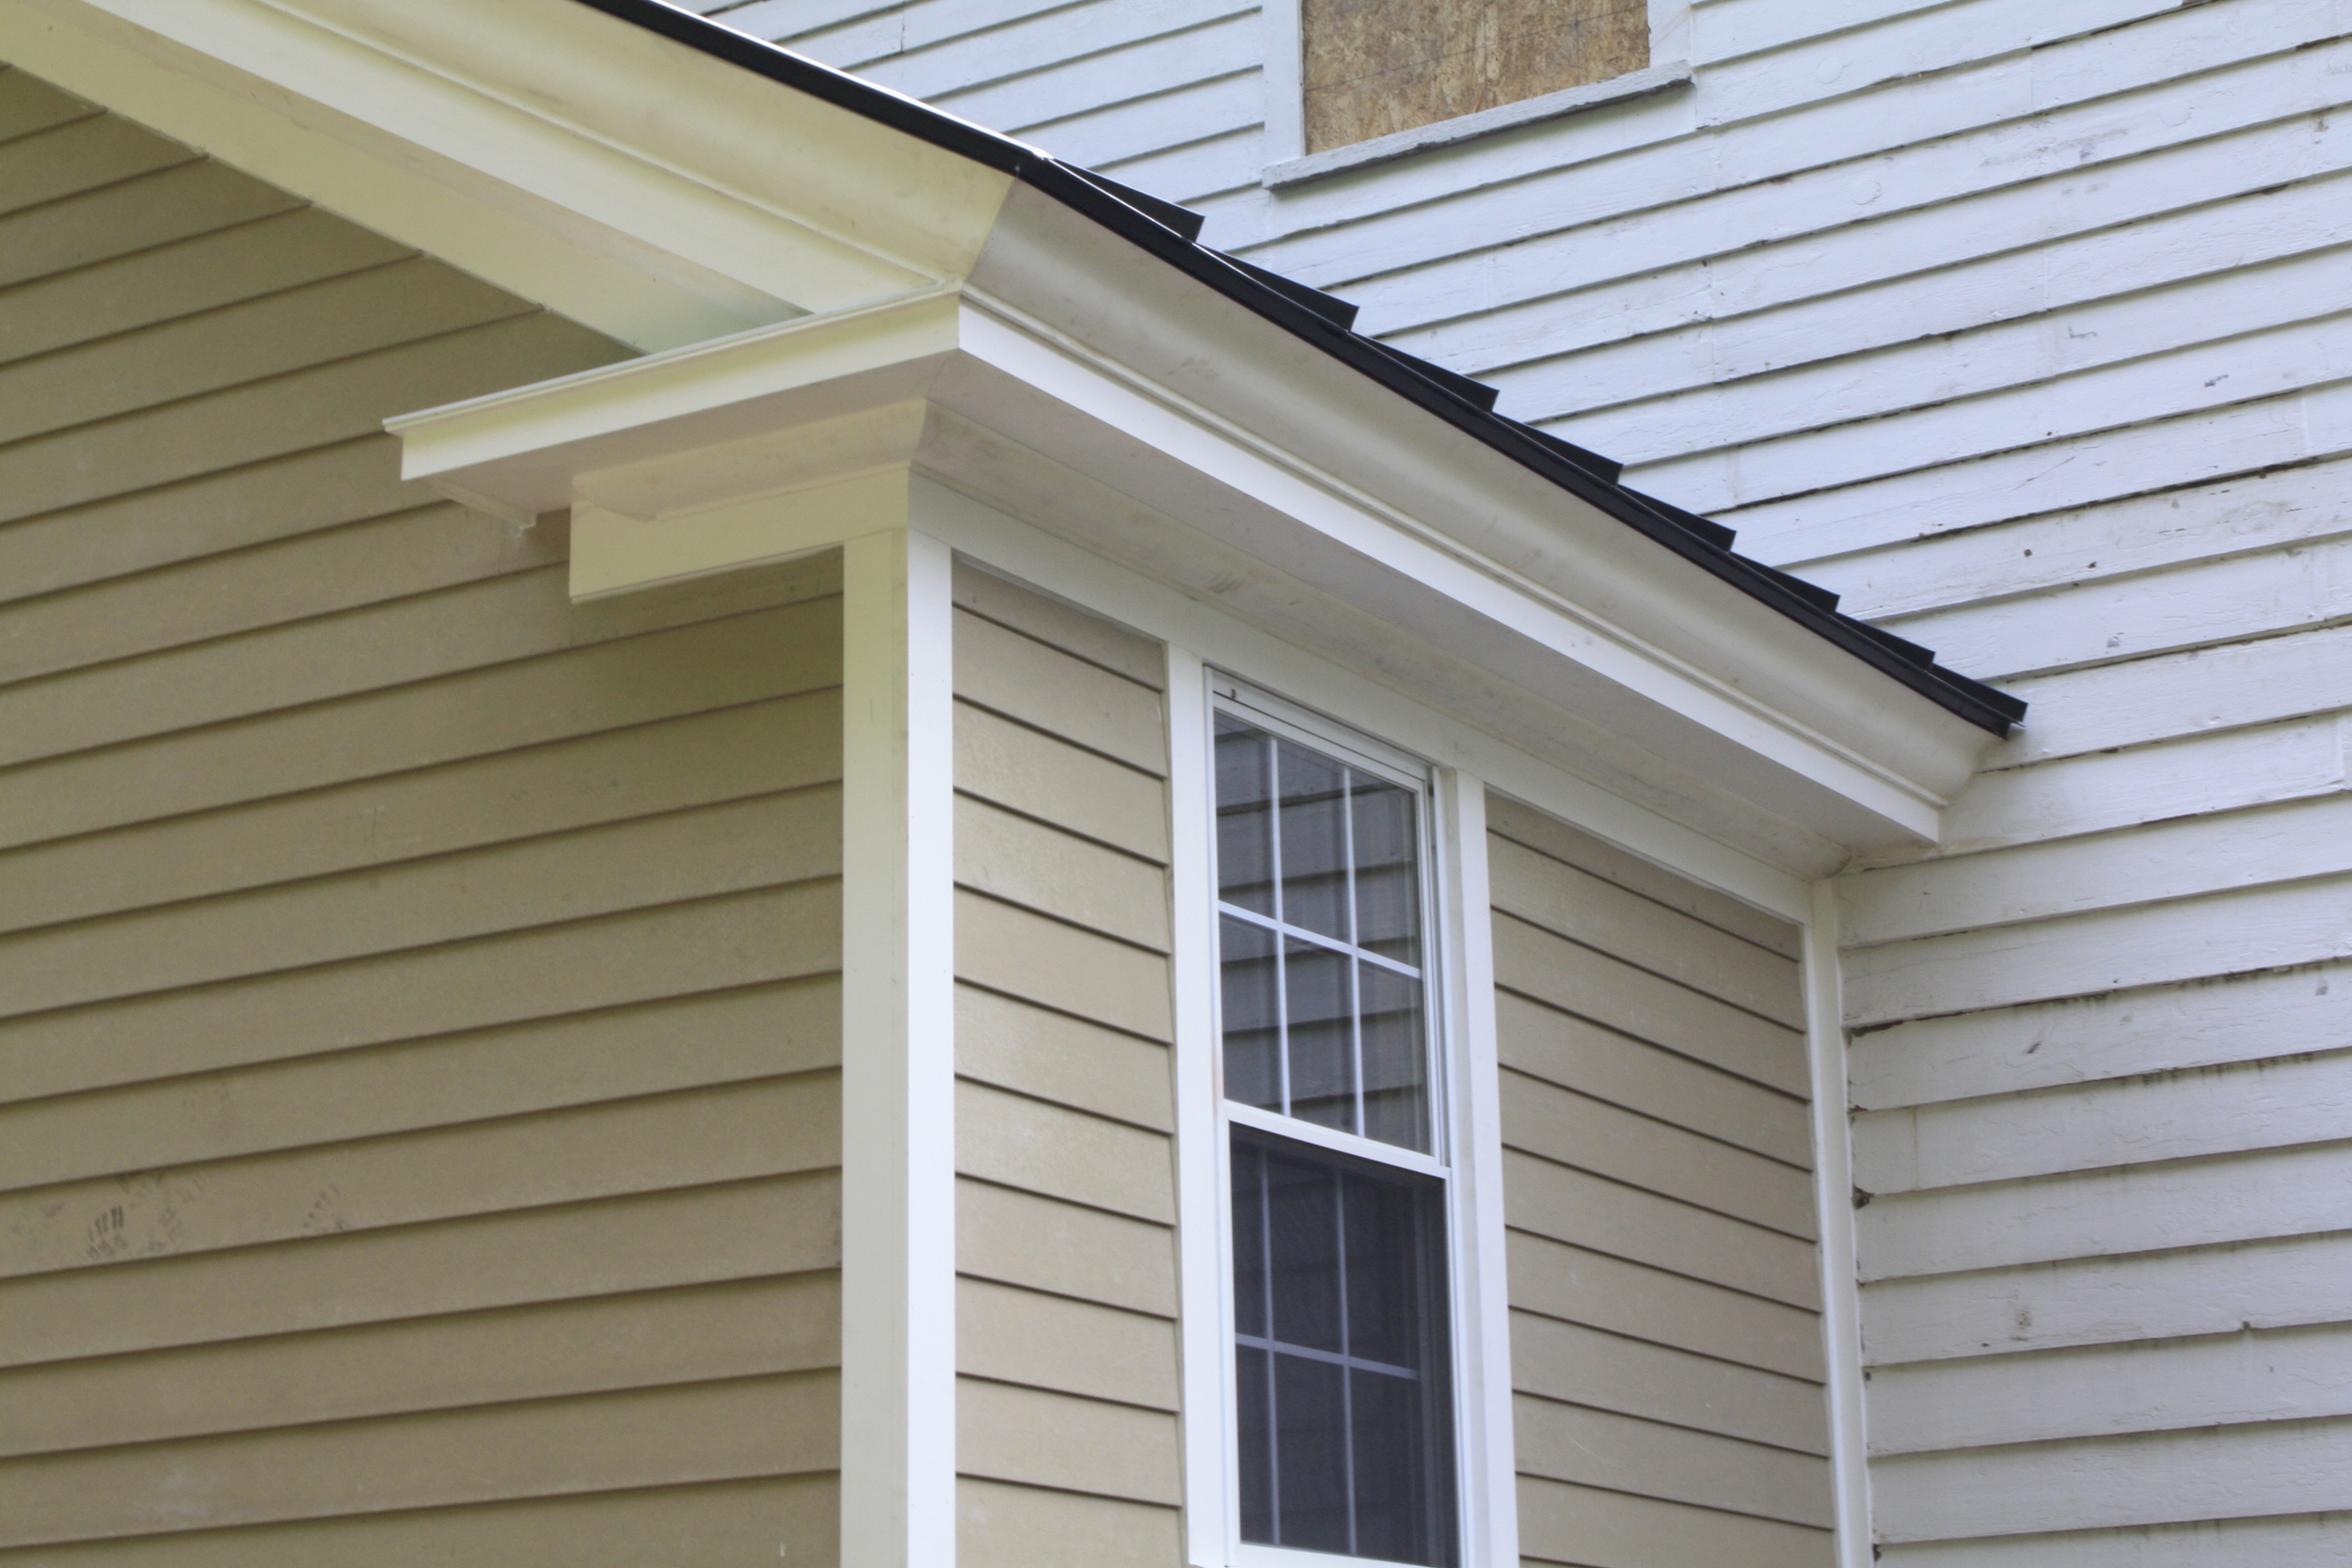 CORNICE DETAIL AND METAL ROOFING